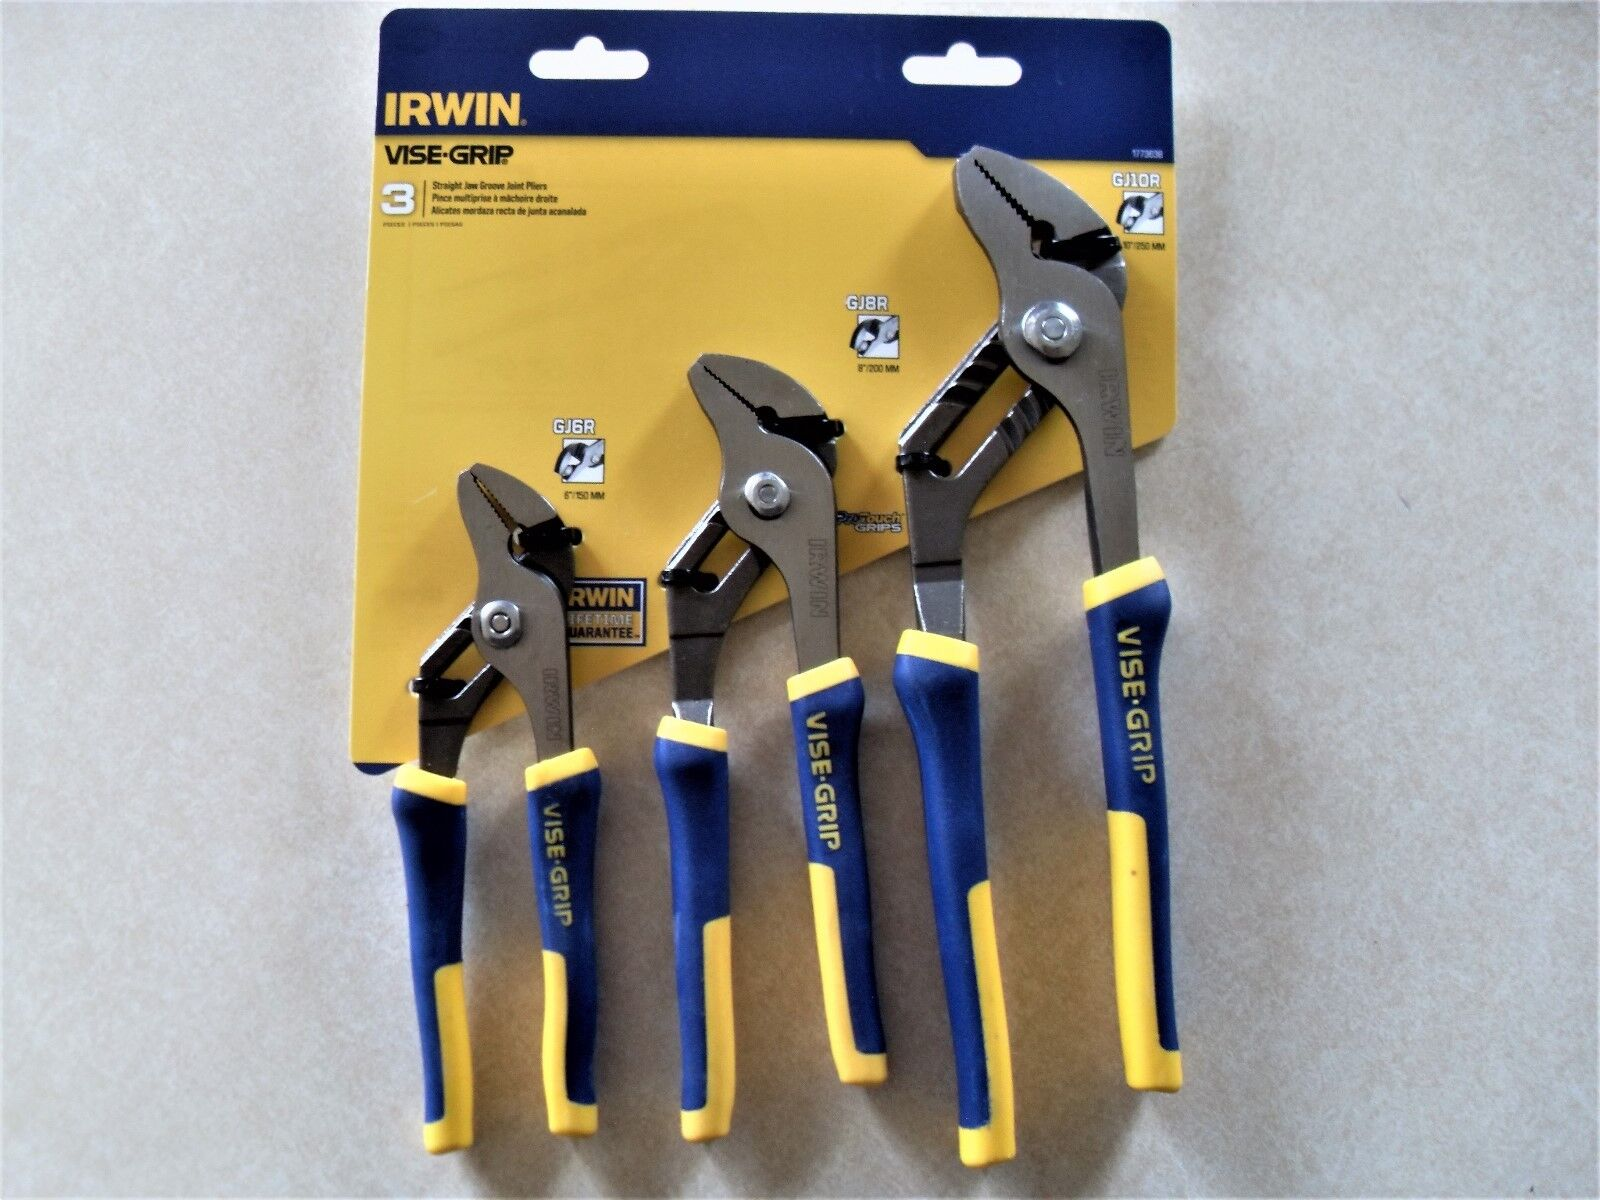 Irwin Tools 1773638 Vise-Grip Groove Joint Set 3-Piece